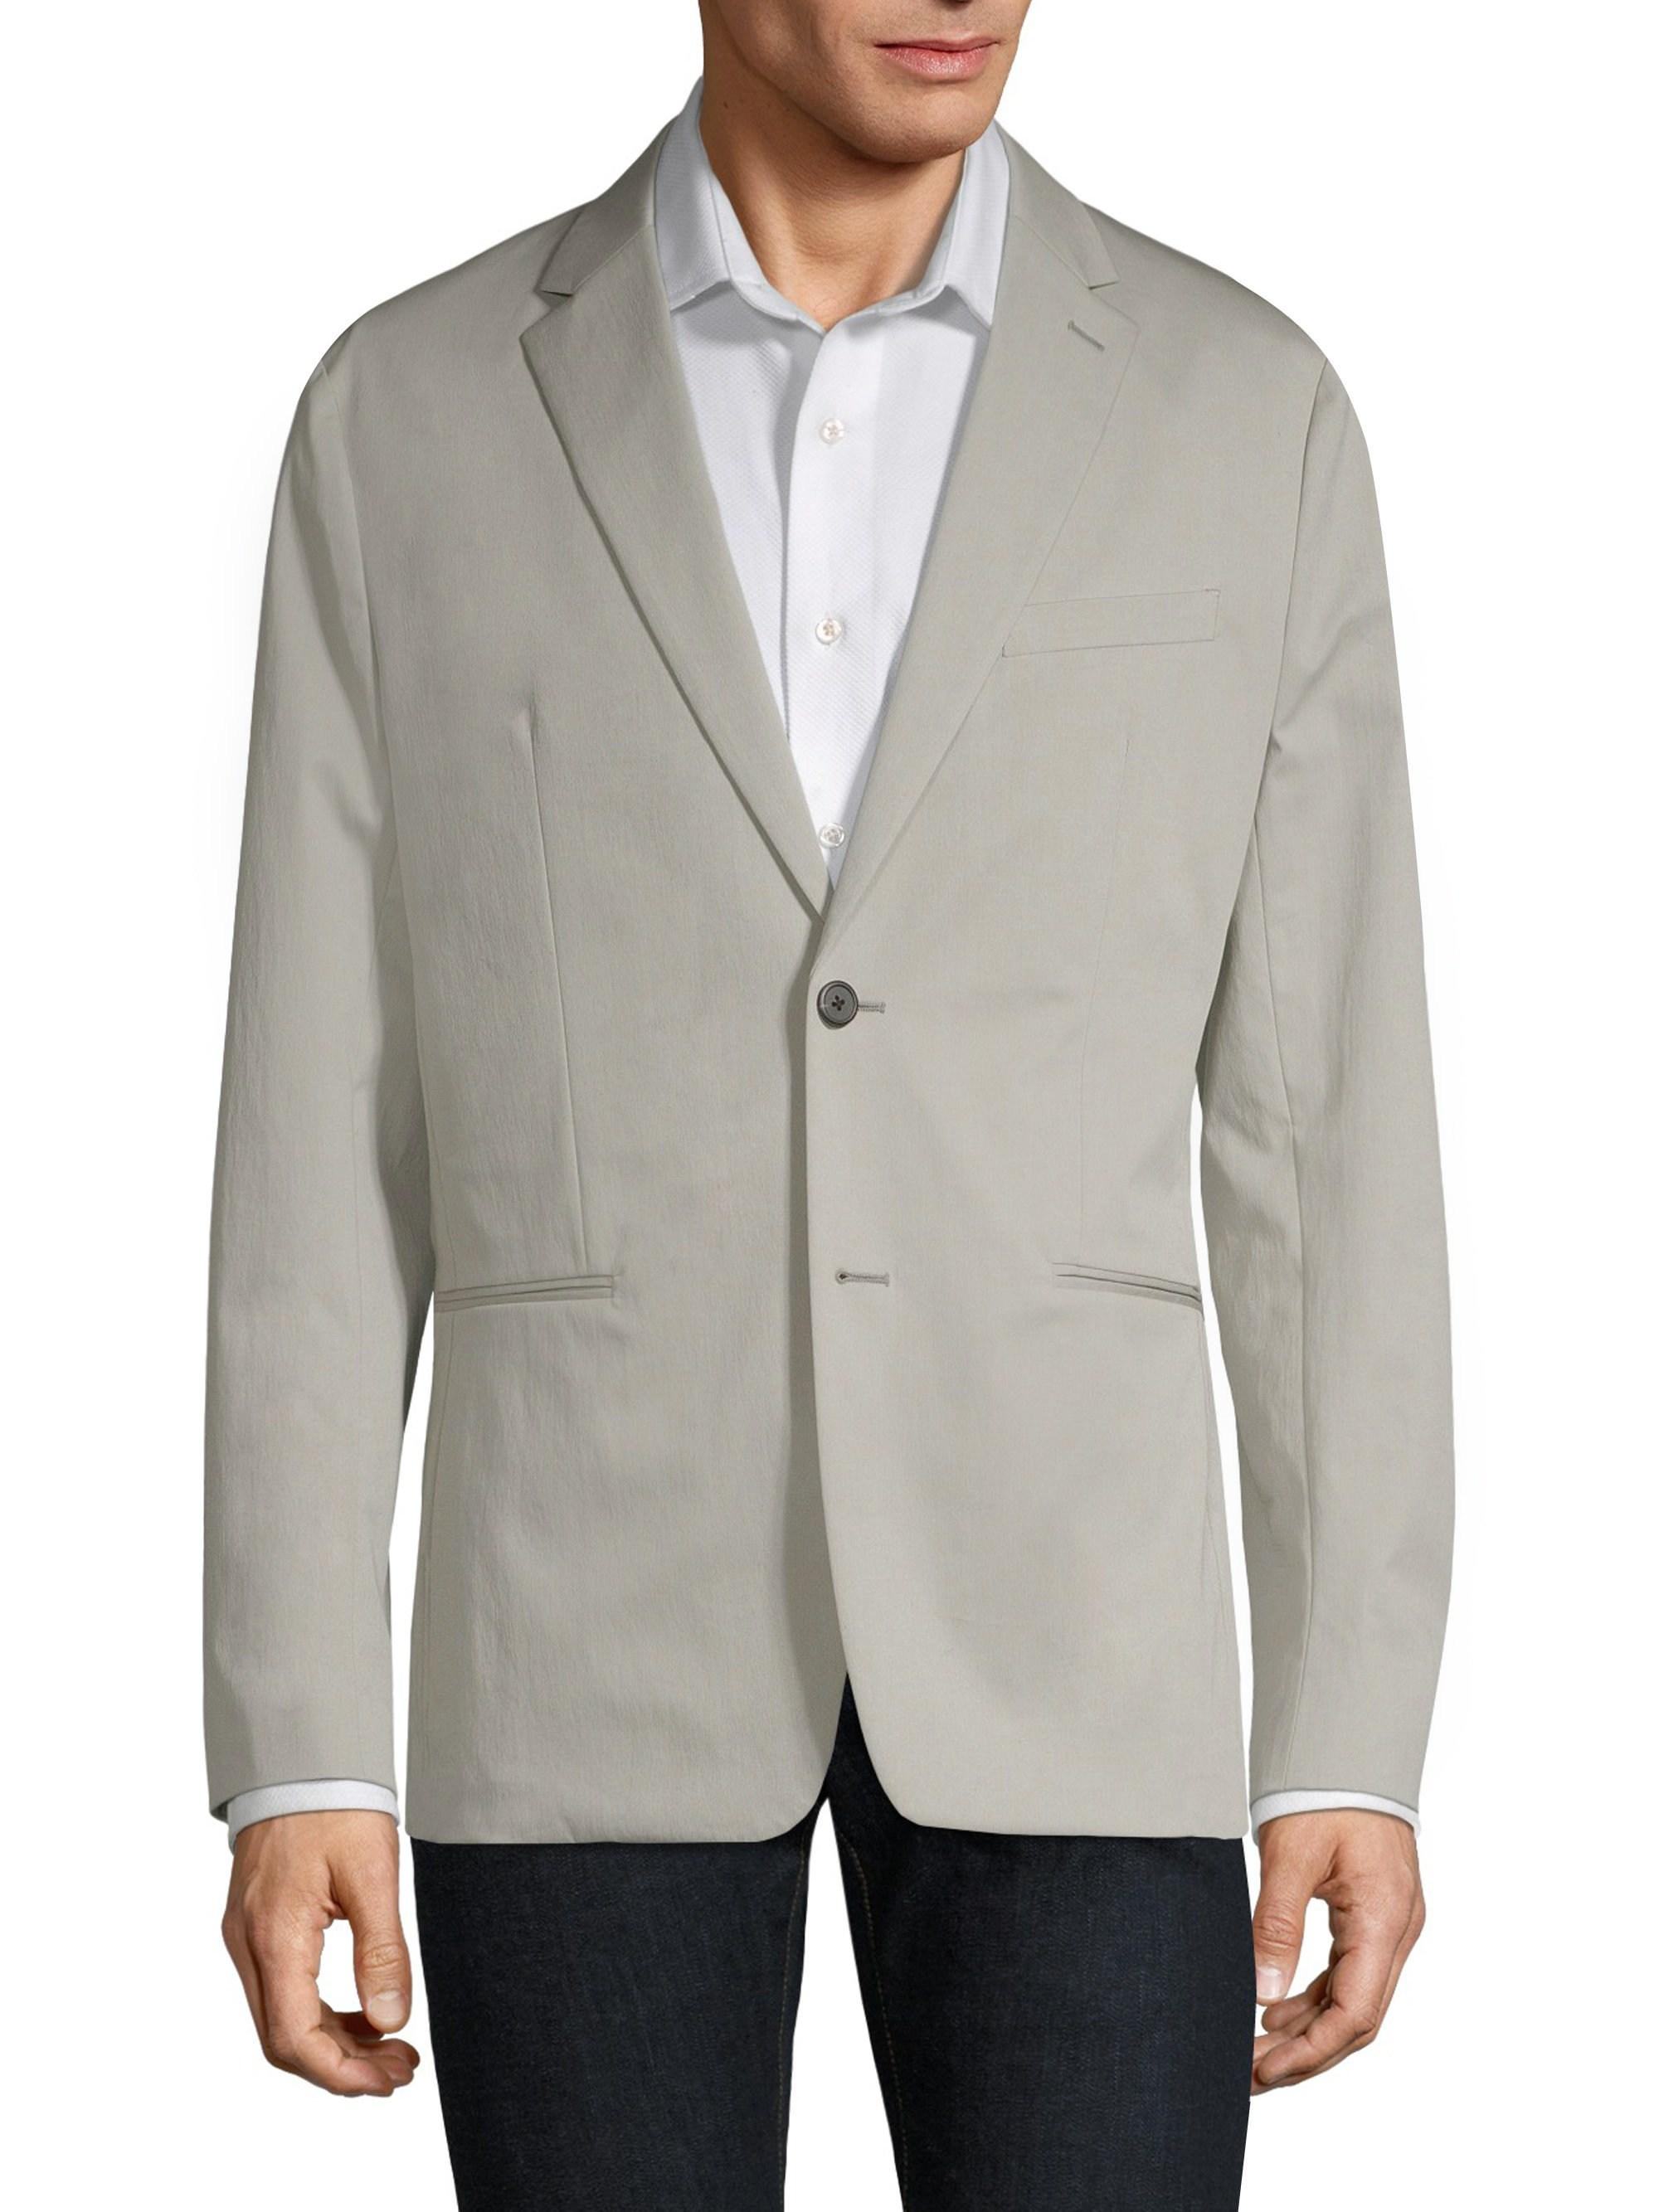 19313798ee4 Theory Men's Slim-fit Newson Sartorial Stretch Jacket - Ash in Gray ...